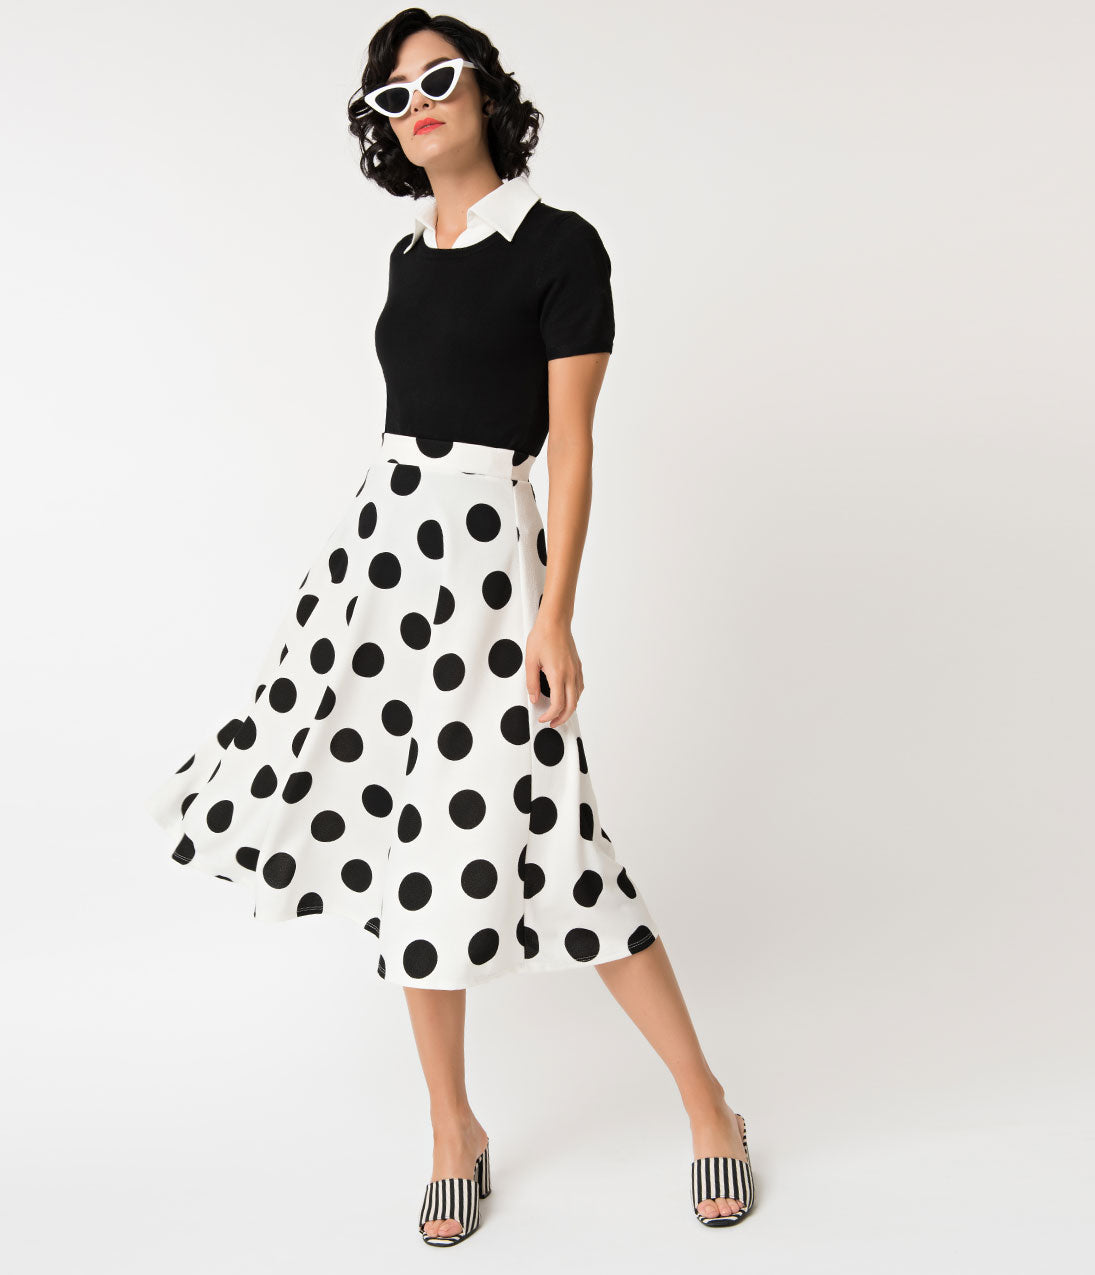 Vintage Polka Dot Dresses – 50s Spotty and Ditsy Prints Retro Style Black  White Polka Dot High Waist Flare Skirt $32.00 AT vintagedancer.com